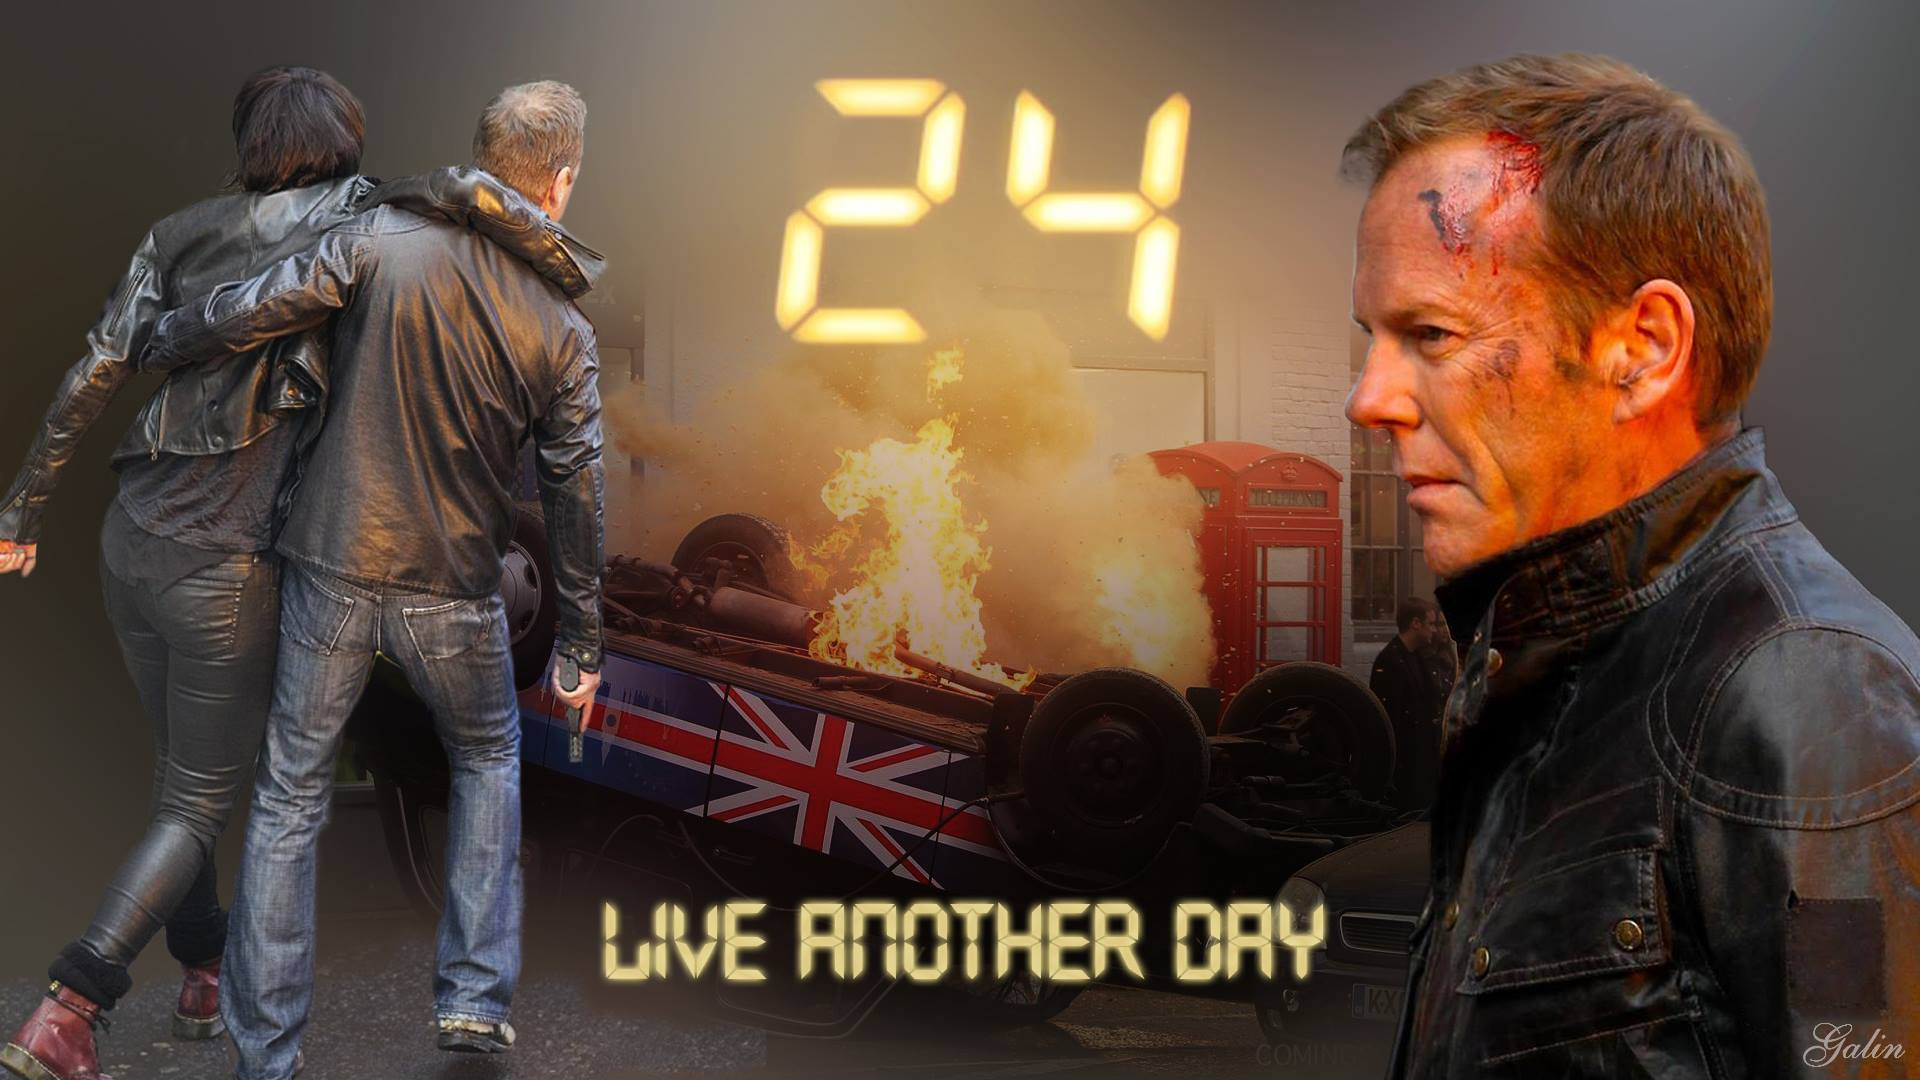 Kiefe in 24 LIVE ANOTHER DAYr in